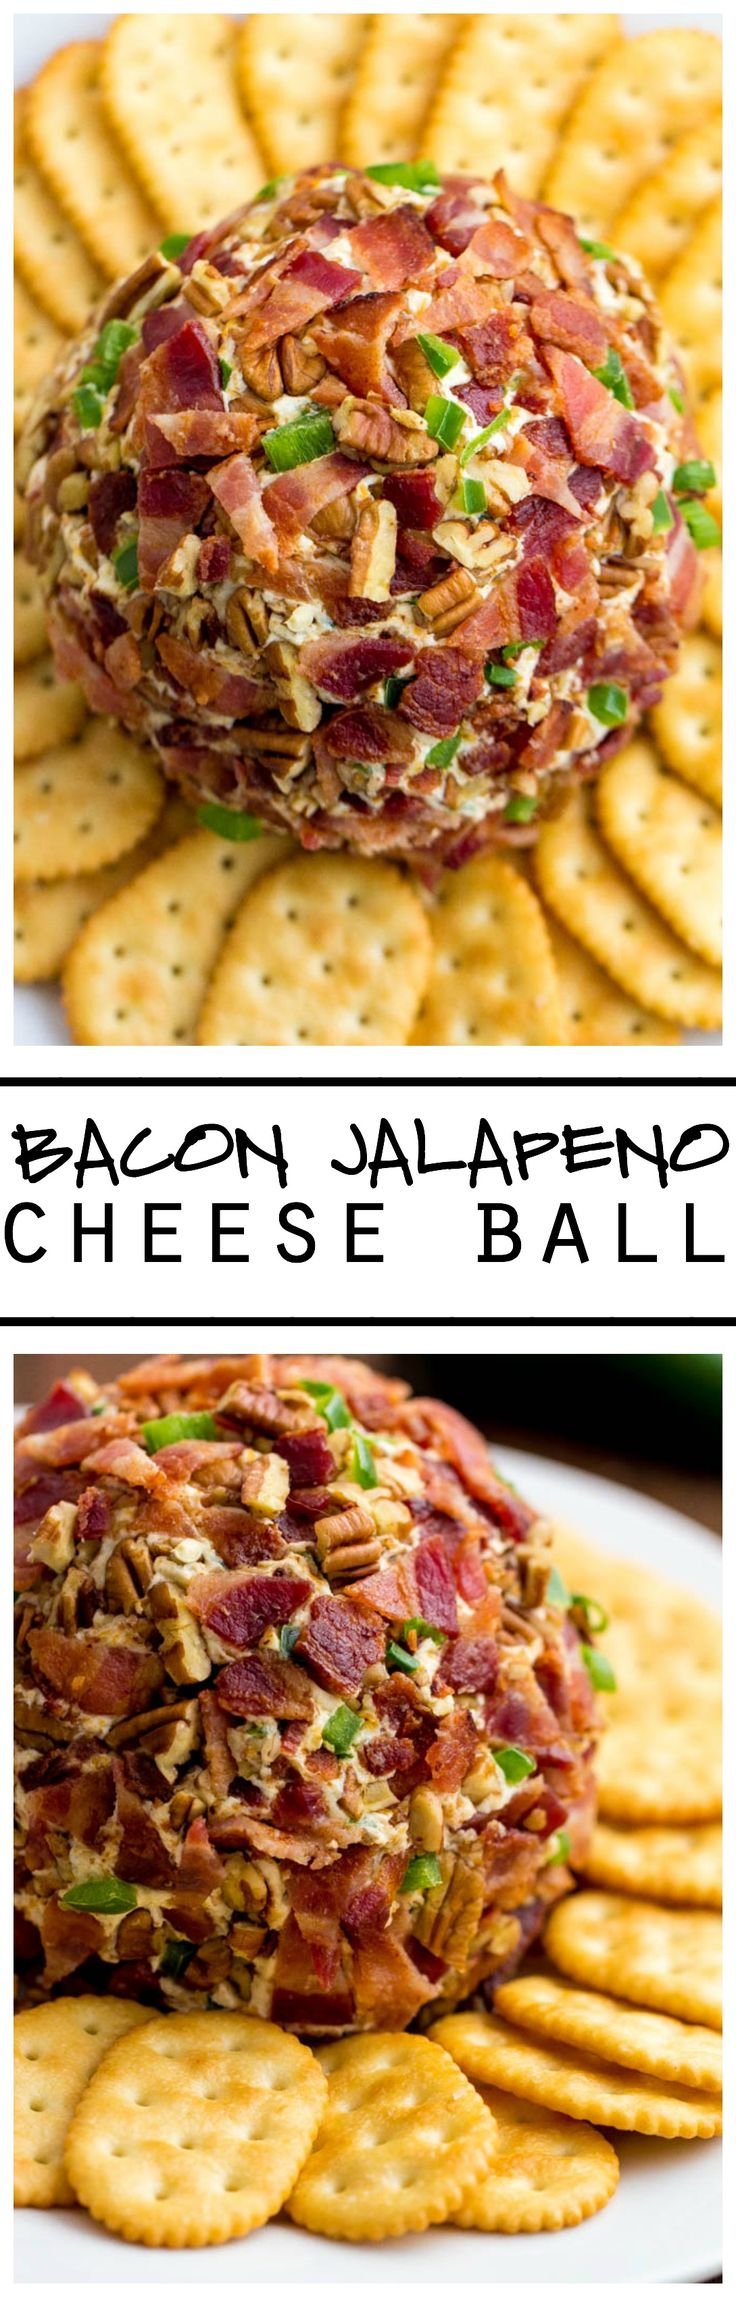 This Bacon Jalapeño Cheese Ball is the BEST thing ever! Loaded with amazing ingredients and then coated in bacon and jalapeños this is a crowd pleaser! 5 out of 5 awesome